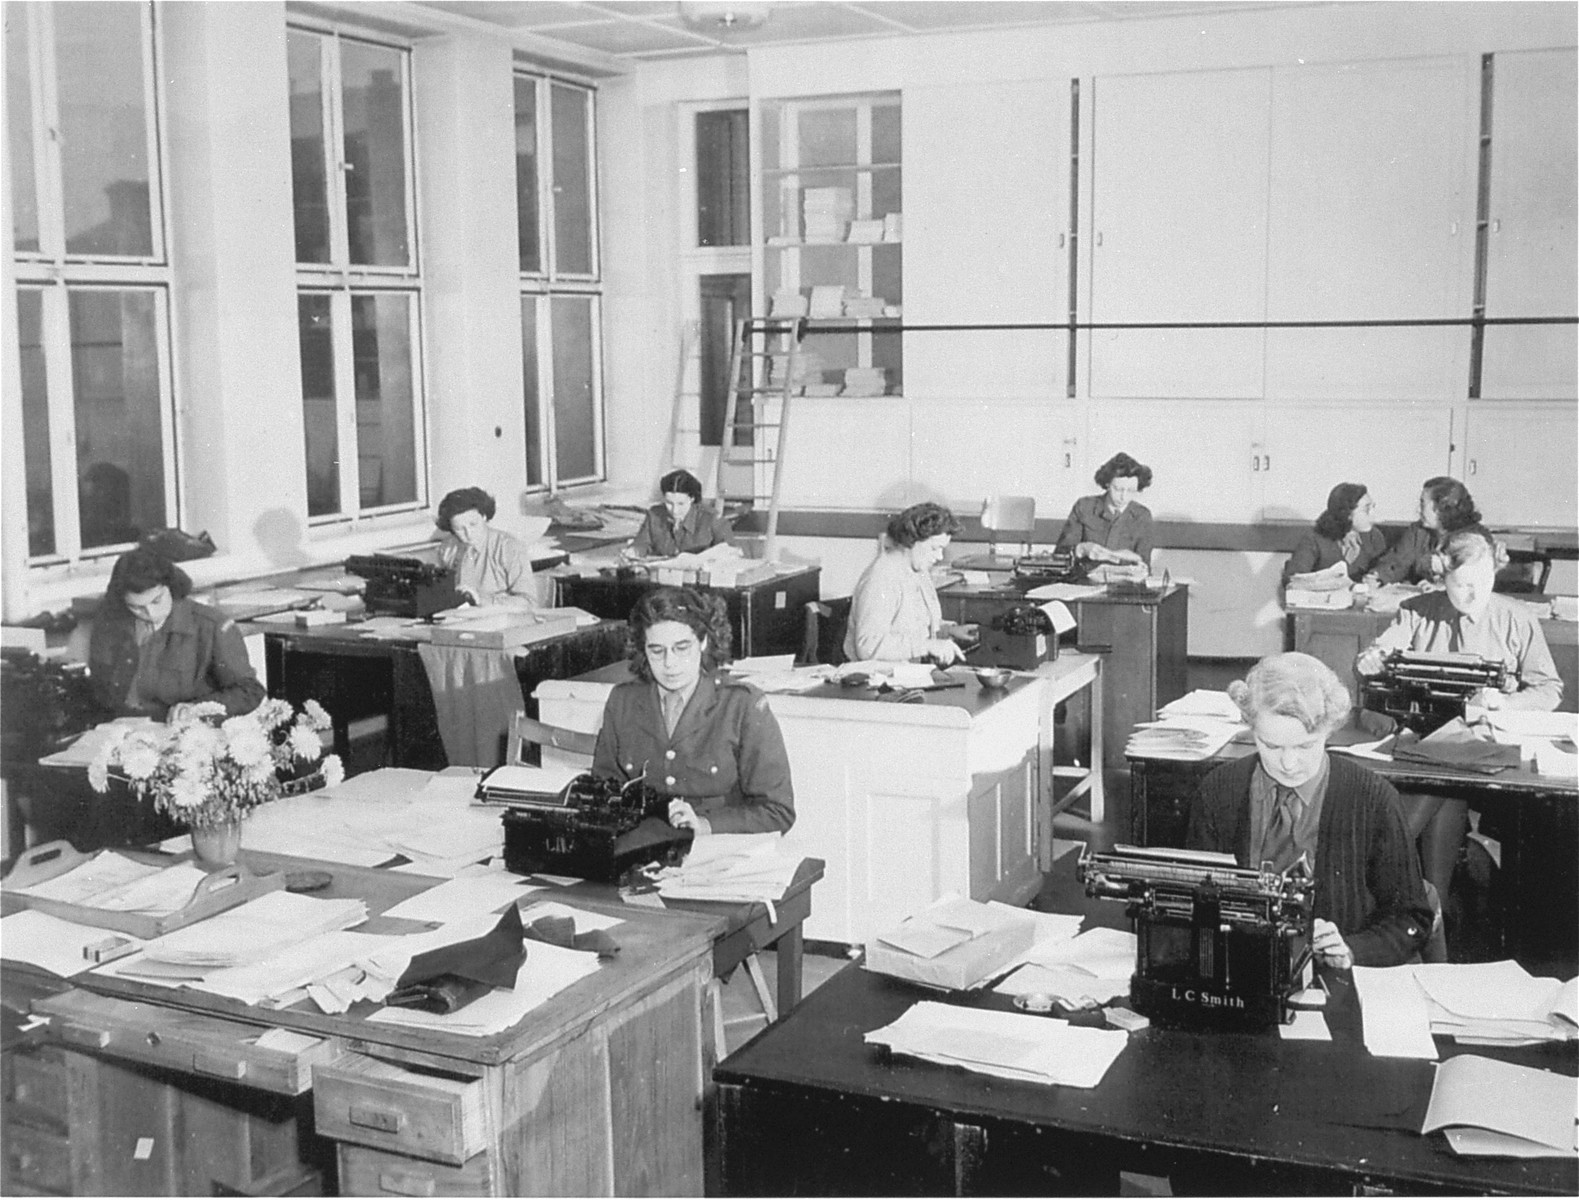 Correspondence room of the UNRRA Central Tracing Bureau, where typists write hundreds of letters daily in efforts to bring together families among the more than one million displaced persons still in western Europe.